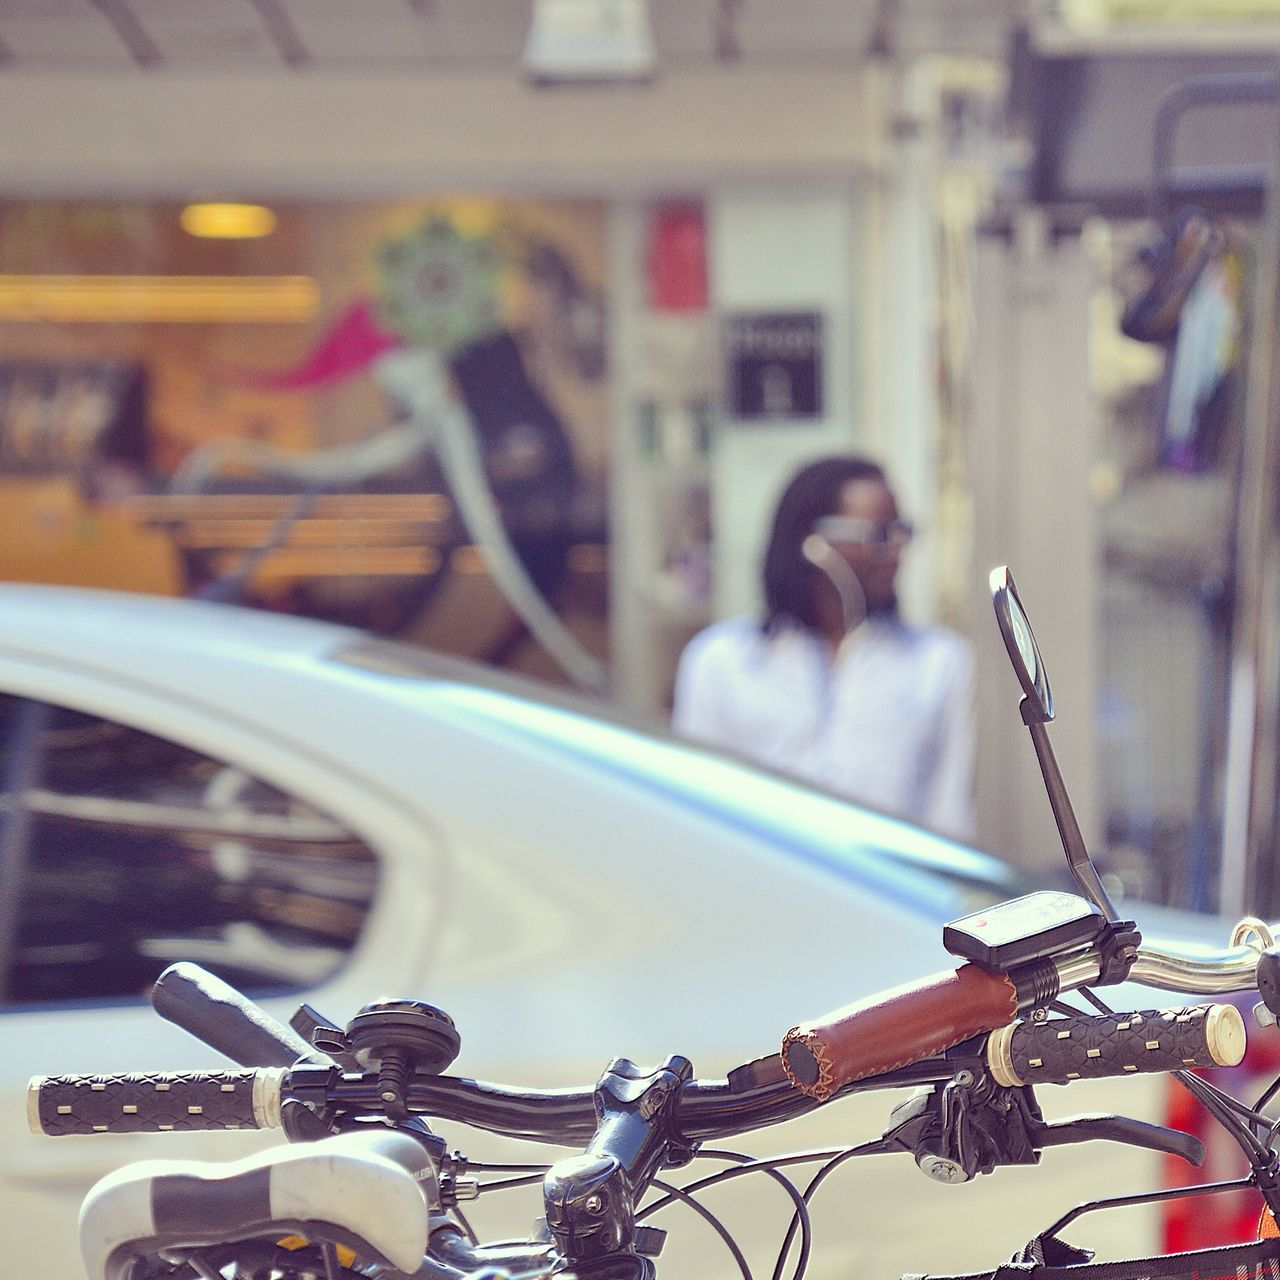 mode of transport, transportation, land vehicle, bicycle, stationary, focus on foreground, real people, lifestyles, car, motorcycle, one person, day, outdoors, city, close-up, people